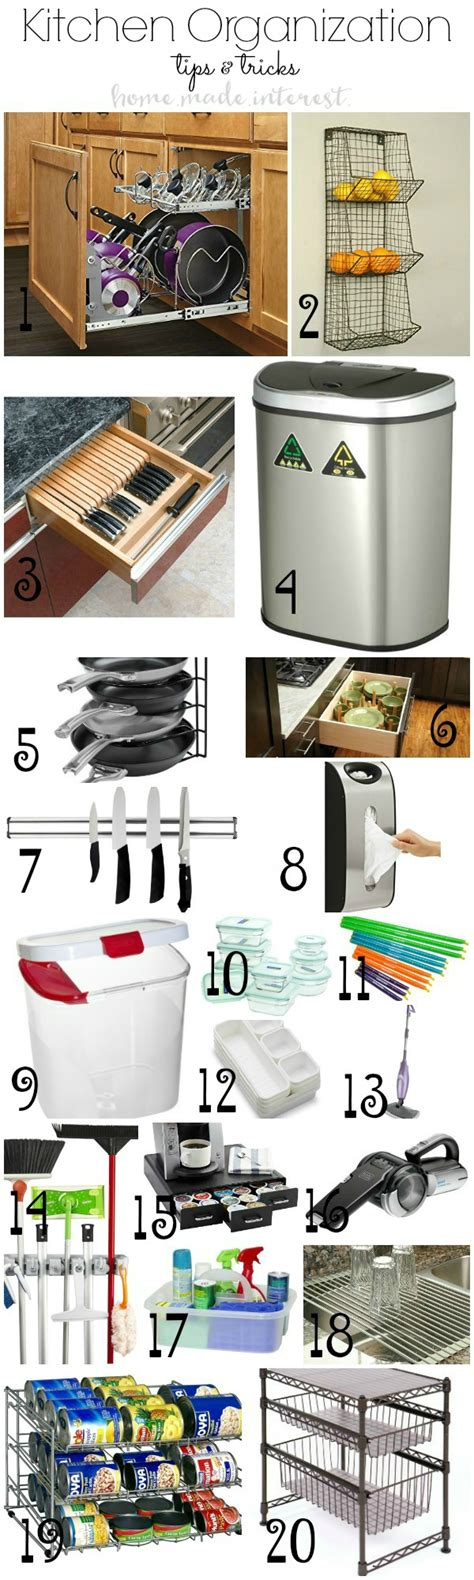 tips to organize your kitchen easy tips to organize your kitchen home made interest 8540